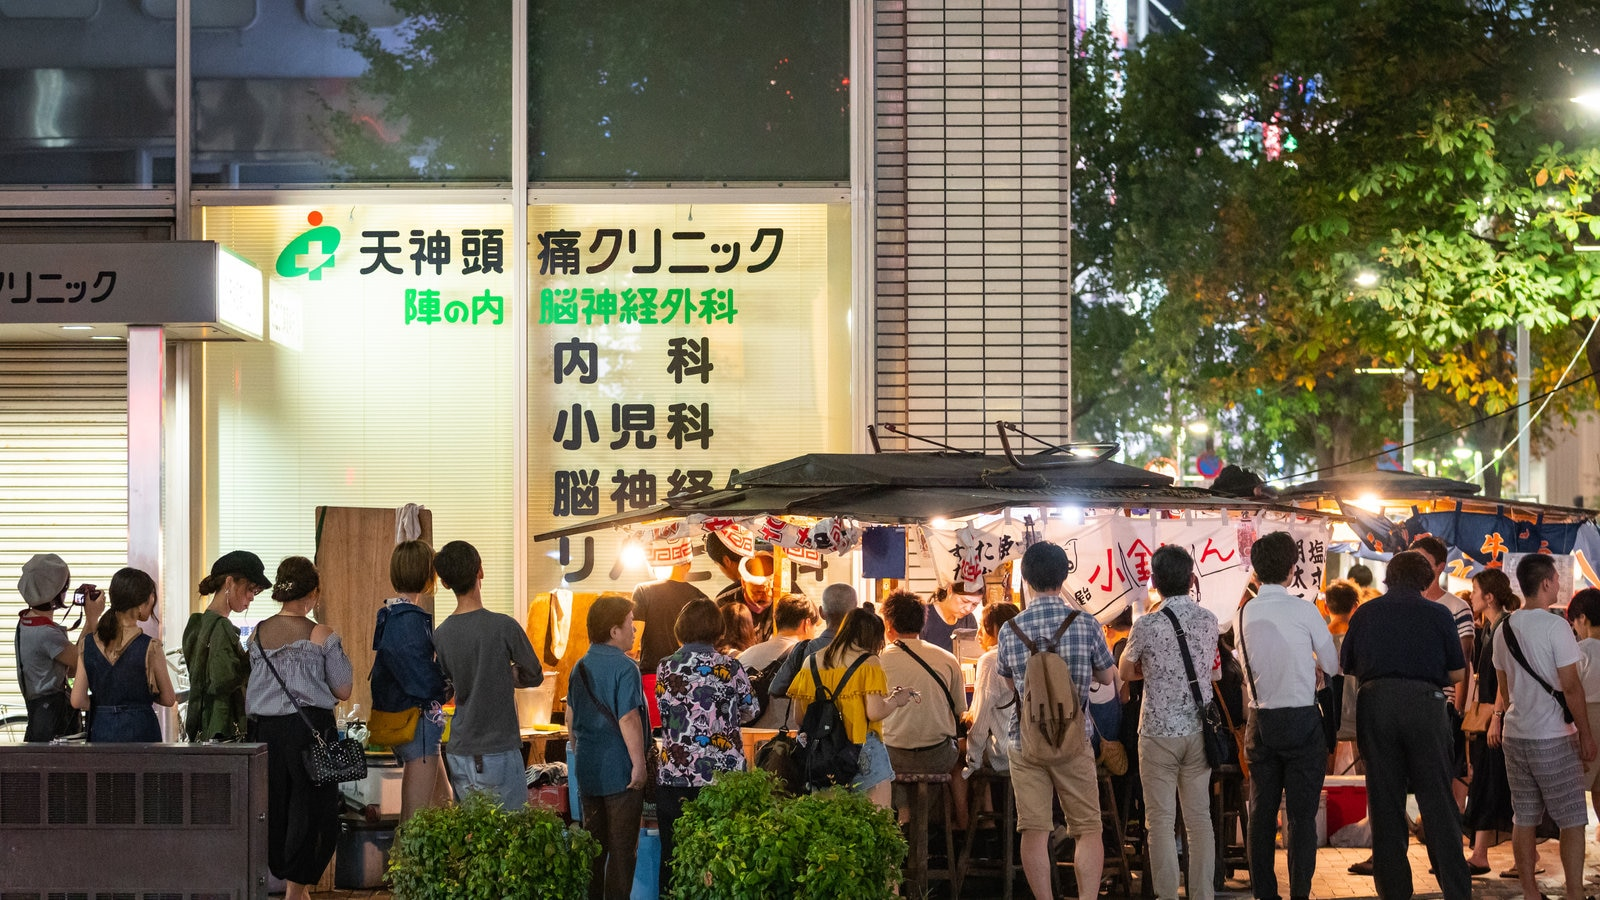 Tenjin featuring street scenes and night scenes as well as a large group of people